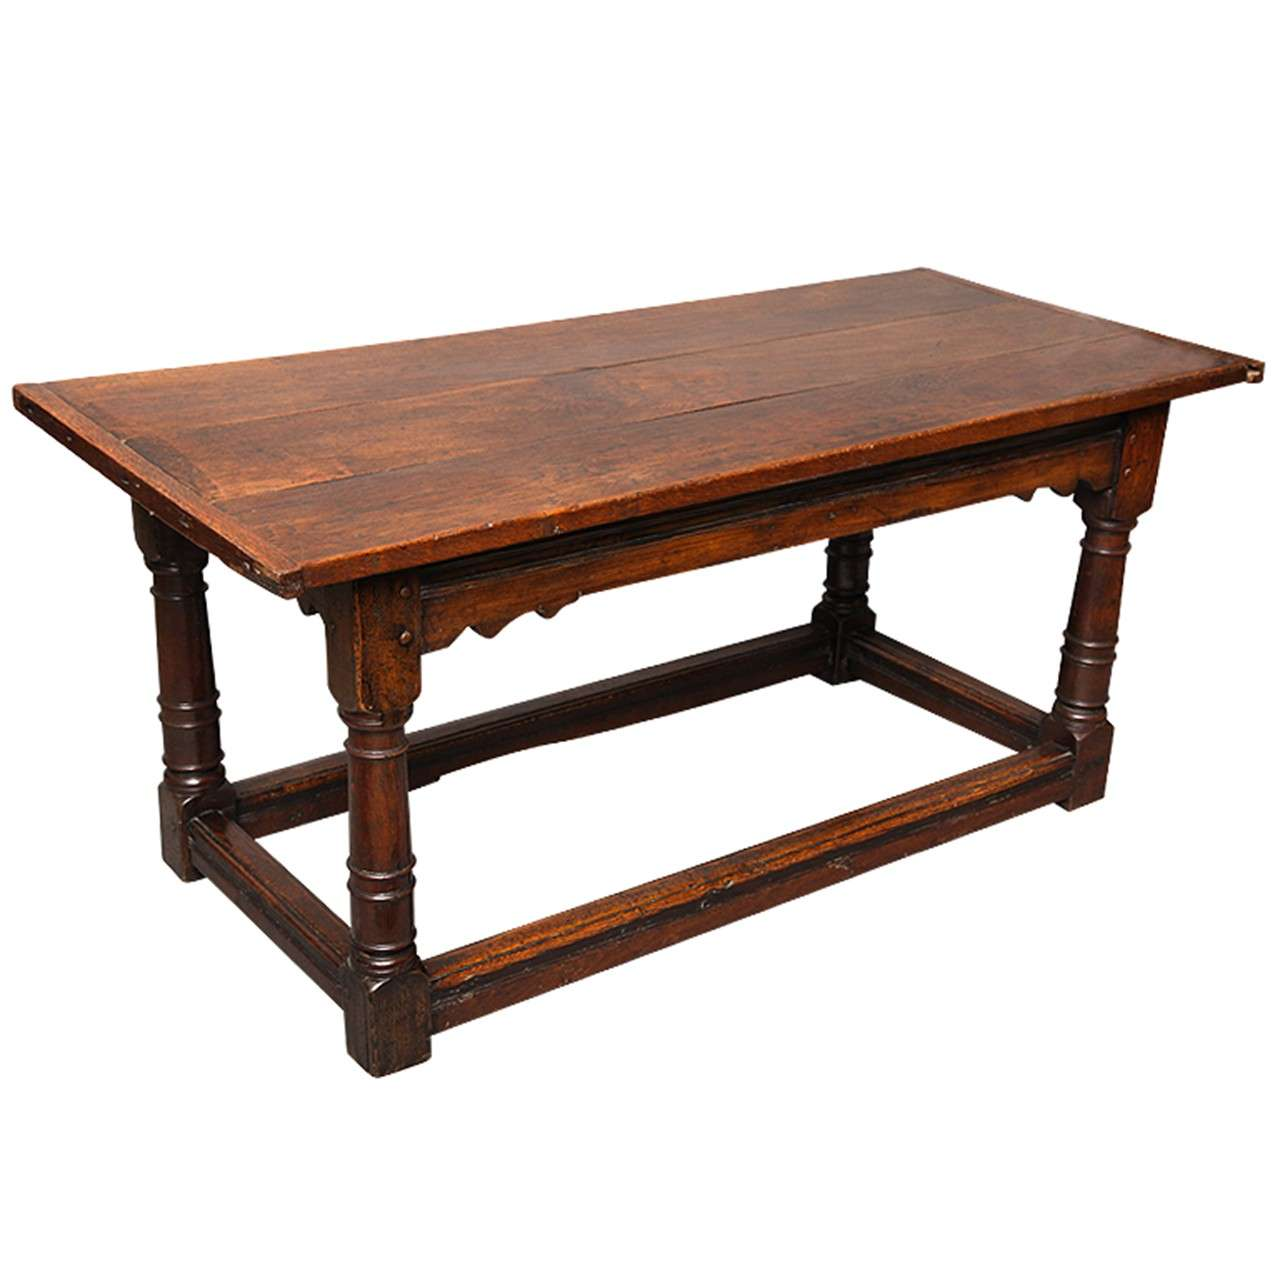 17th Century English Oak Refectory Table At 1stdibs